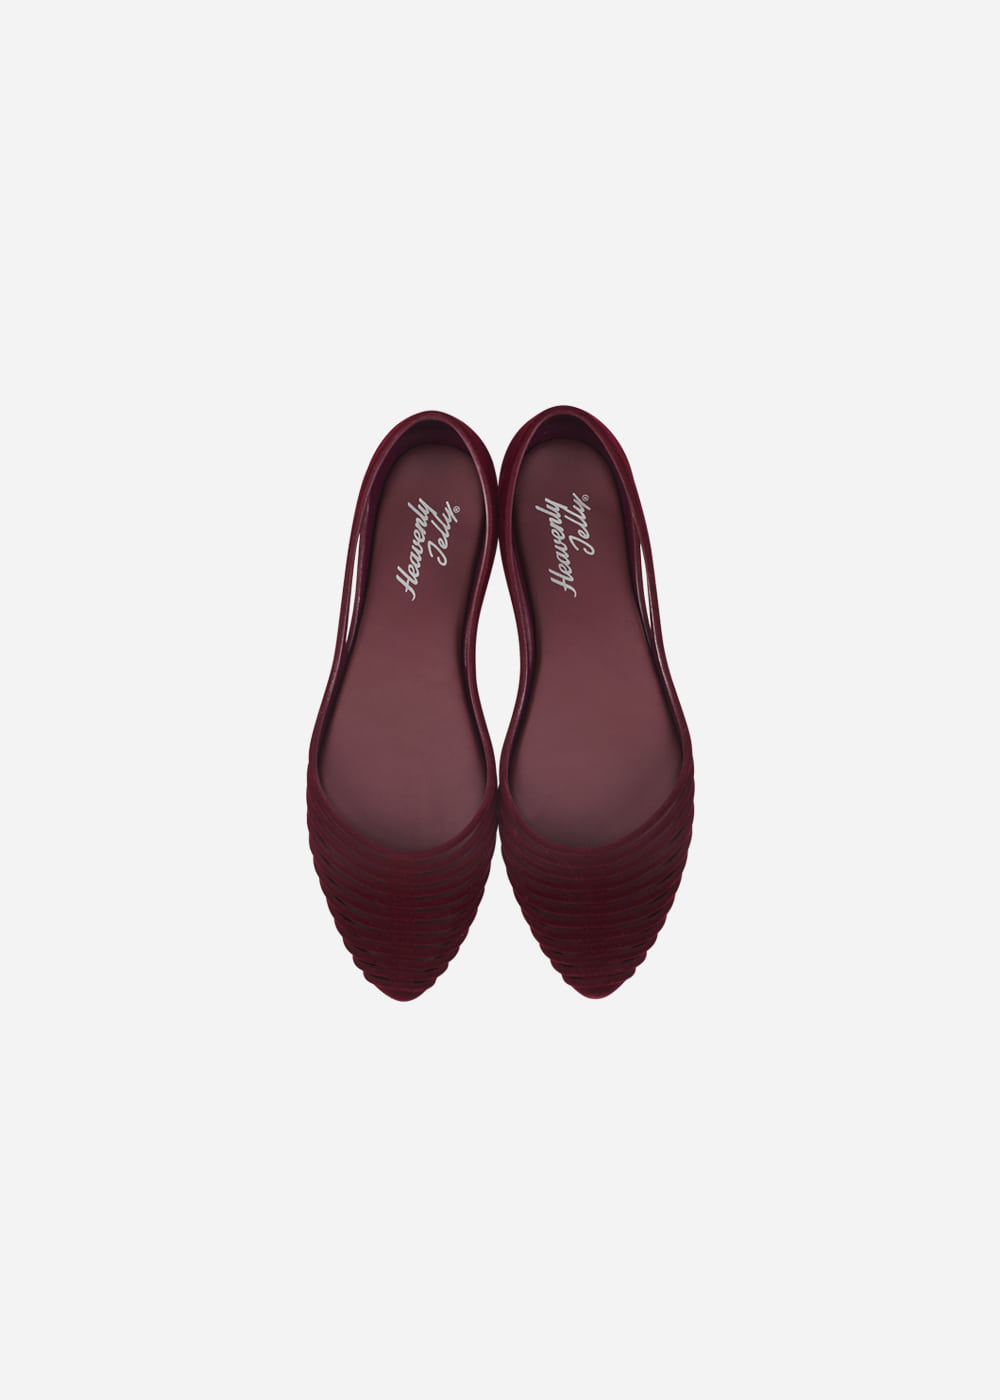 [Heavenly Jelly] Grace Suede Burgundy